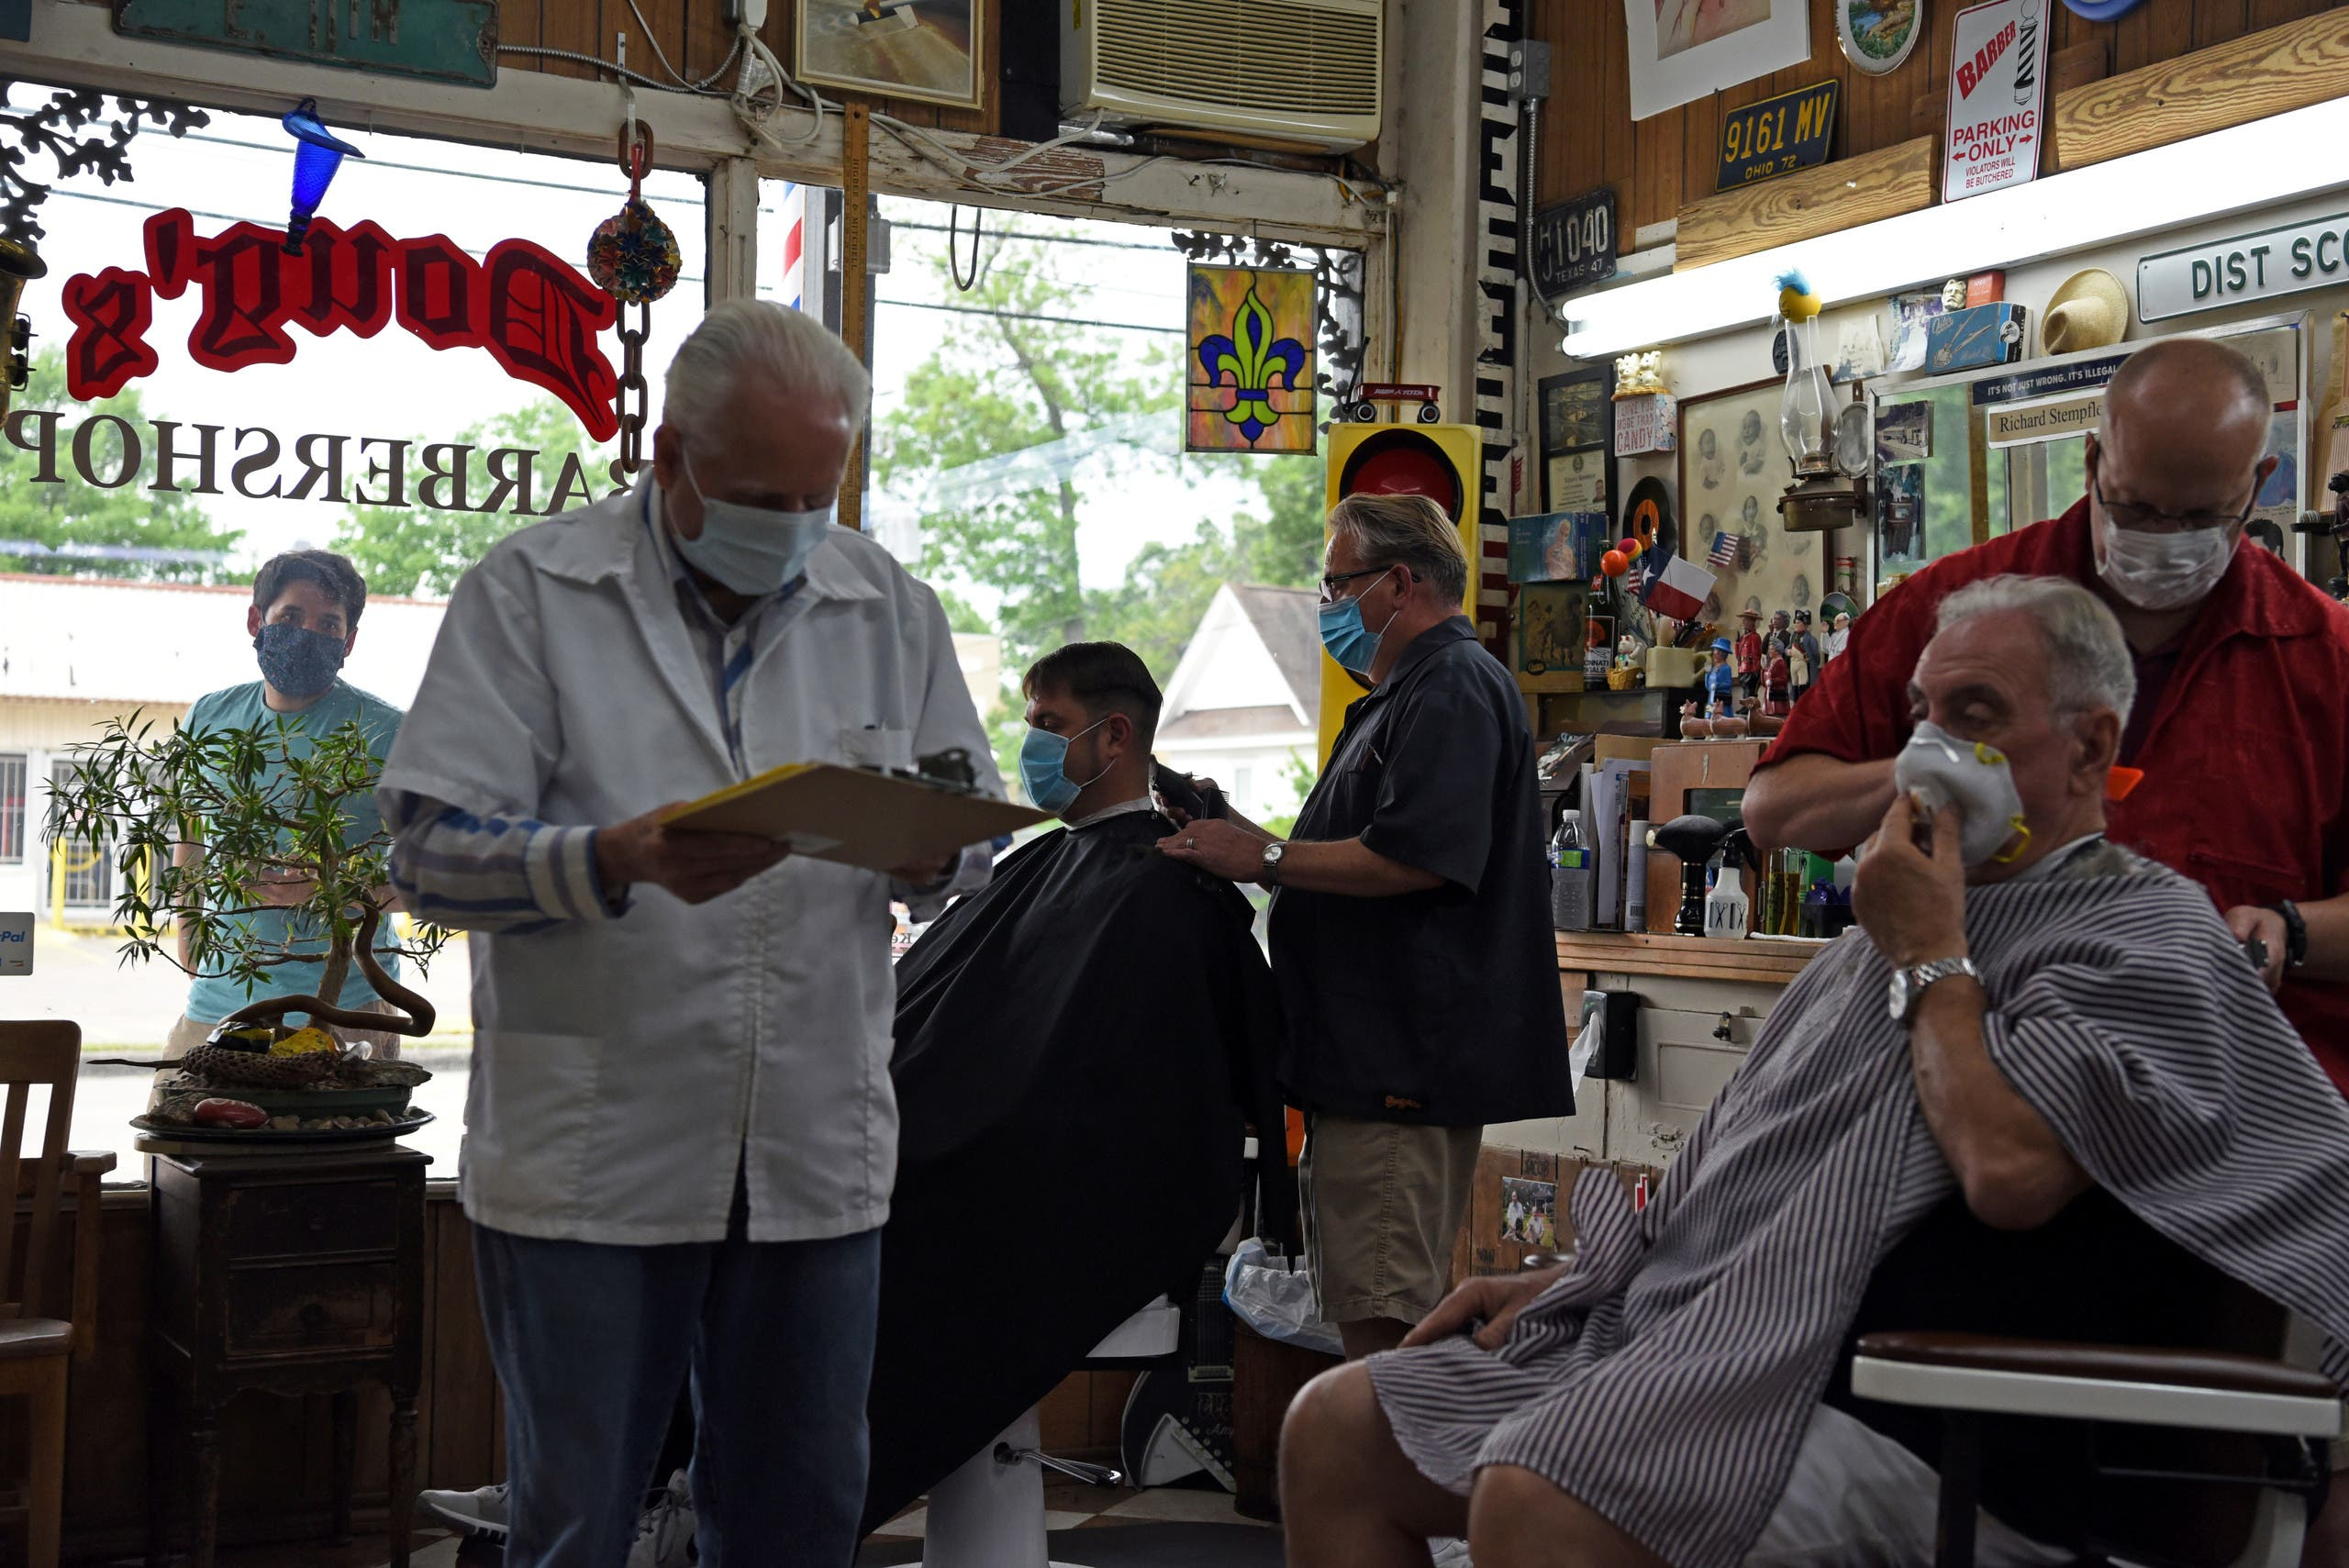 Men receive haircuts as social distancing guidelines are relaxed at Doug's Barber Shop in Houston on May 8, 2020. (Reuters)